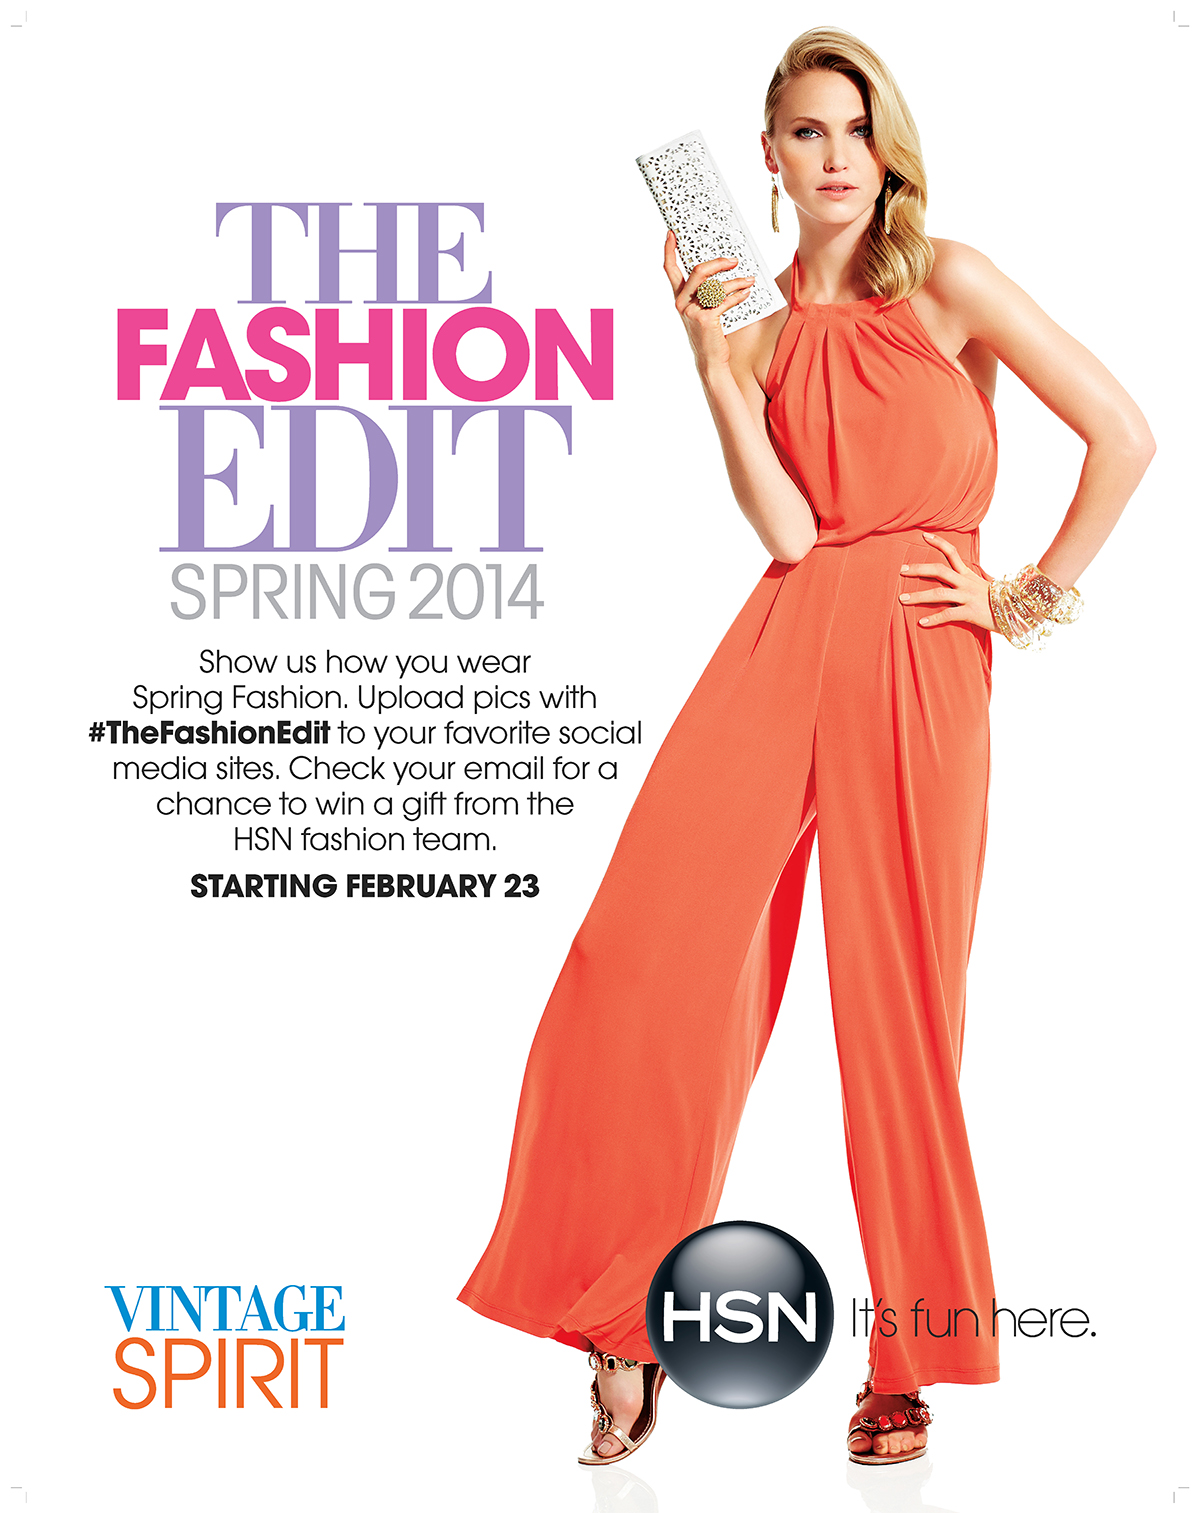 MIS140209_PR1052_Campus_Posters_For_Spring_Fashion_0212 2 copy.jpg